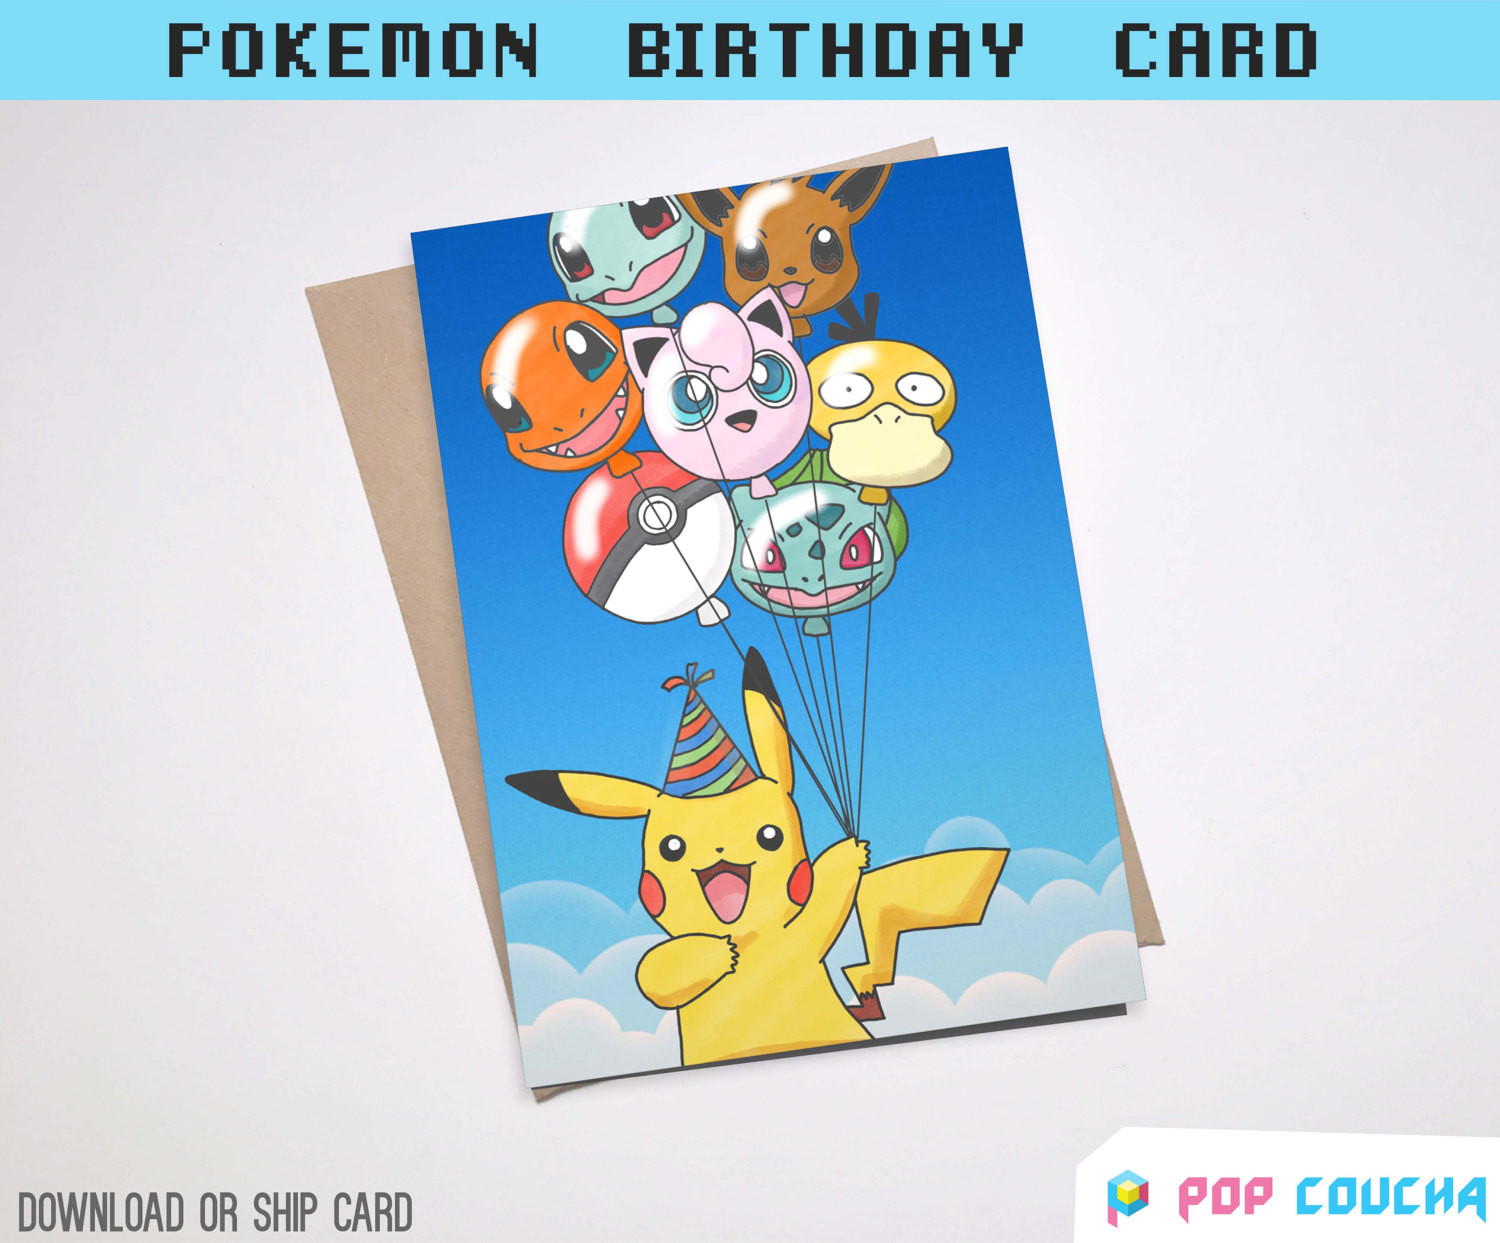 Best ideas about Pikachu Birthday Card . Save or Pin Pikachu birthday card greeting celebration balloon by Now.